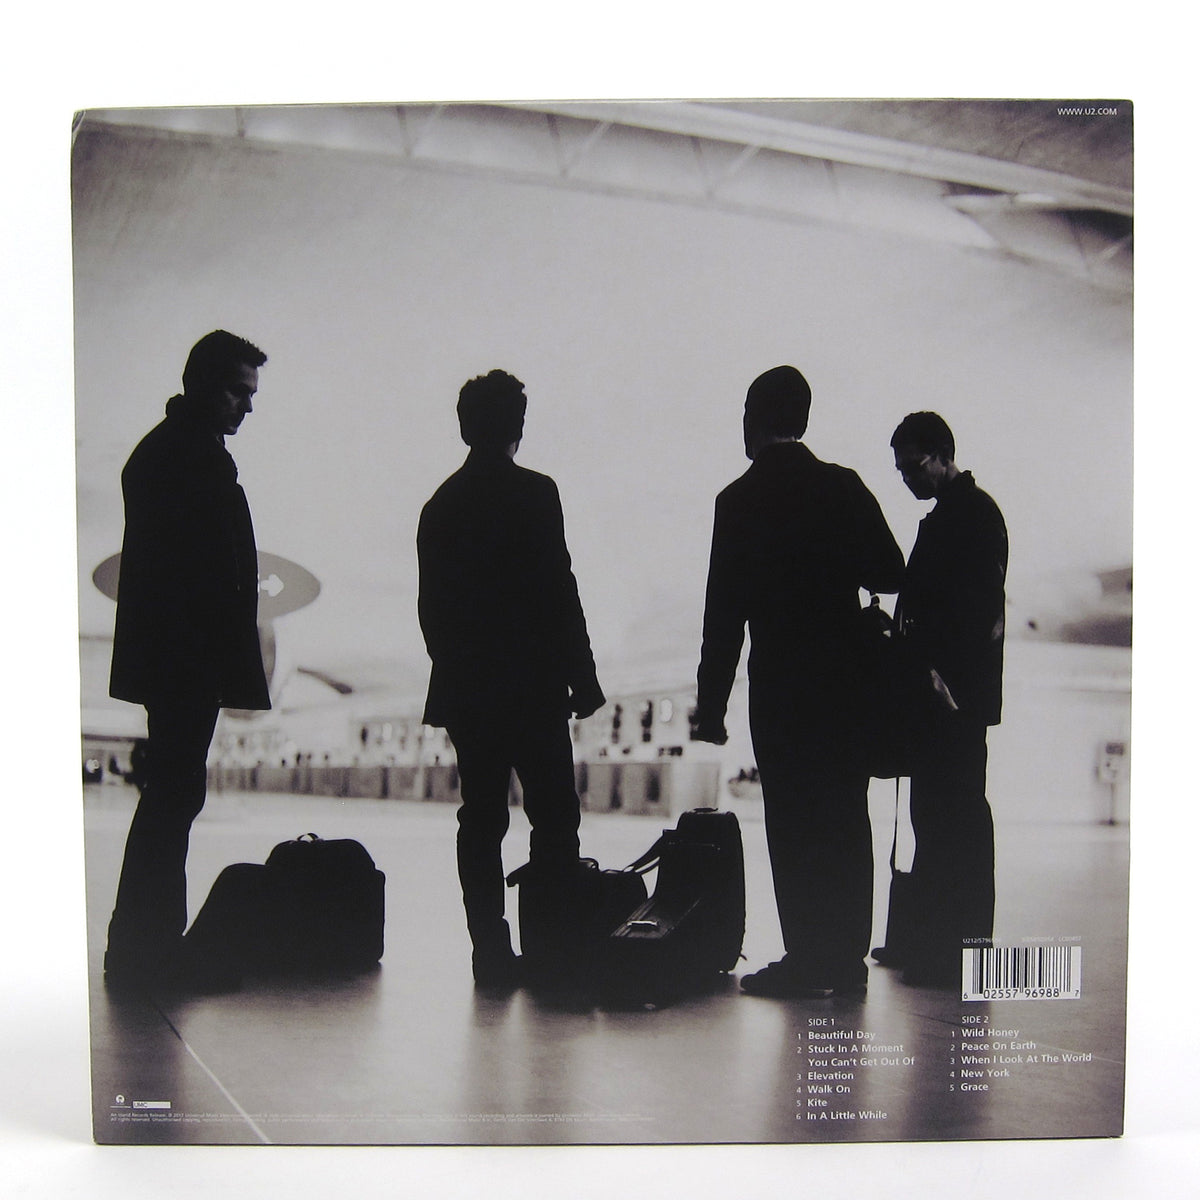 U2: All That You Can't Leave Behind (180g) Vinyl LP